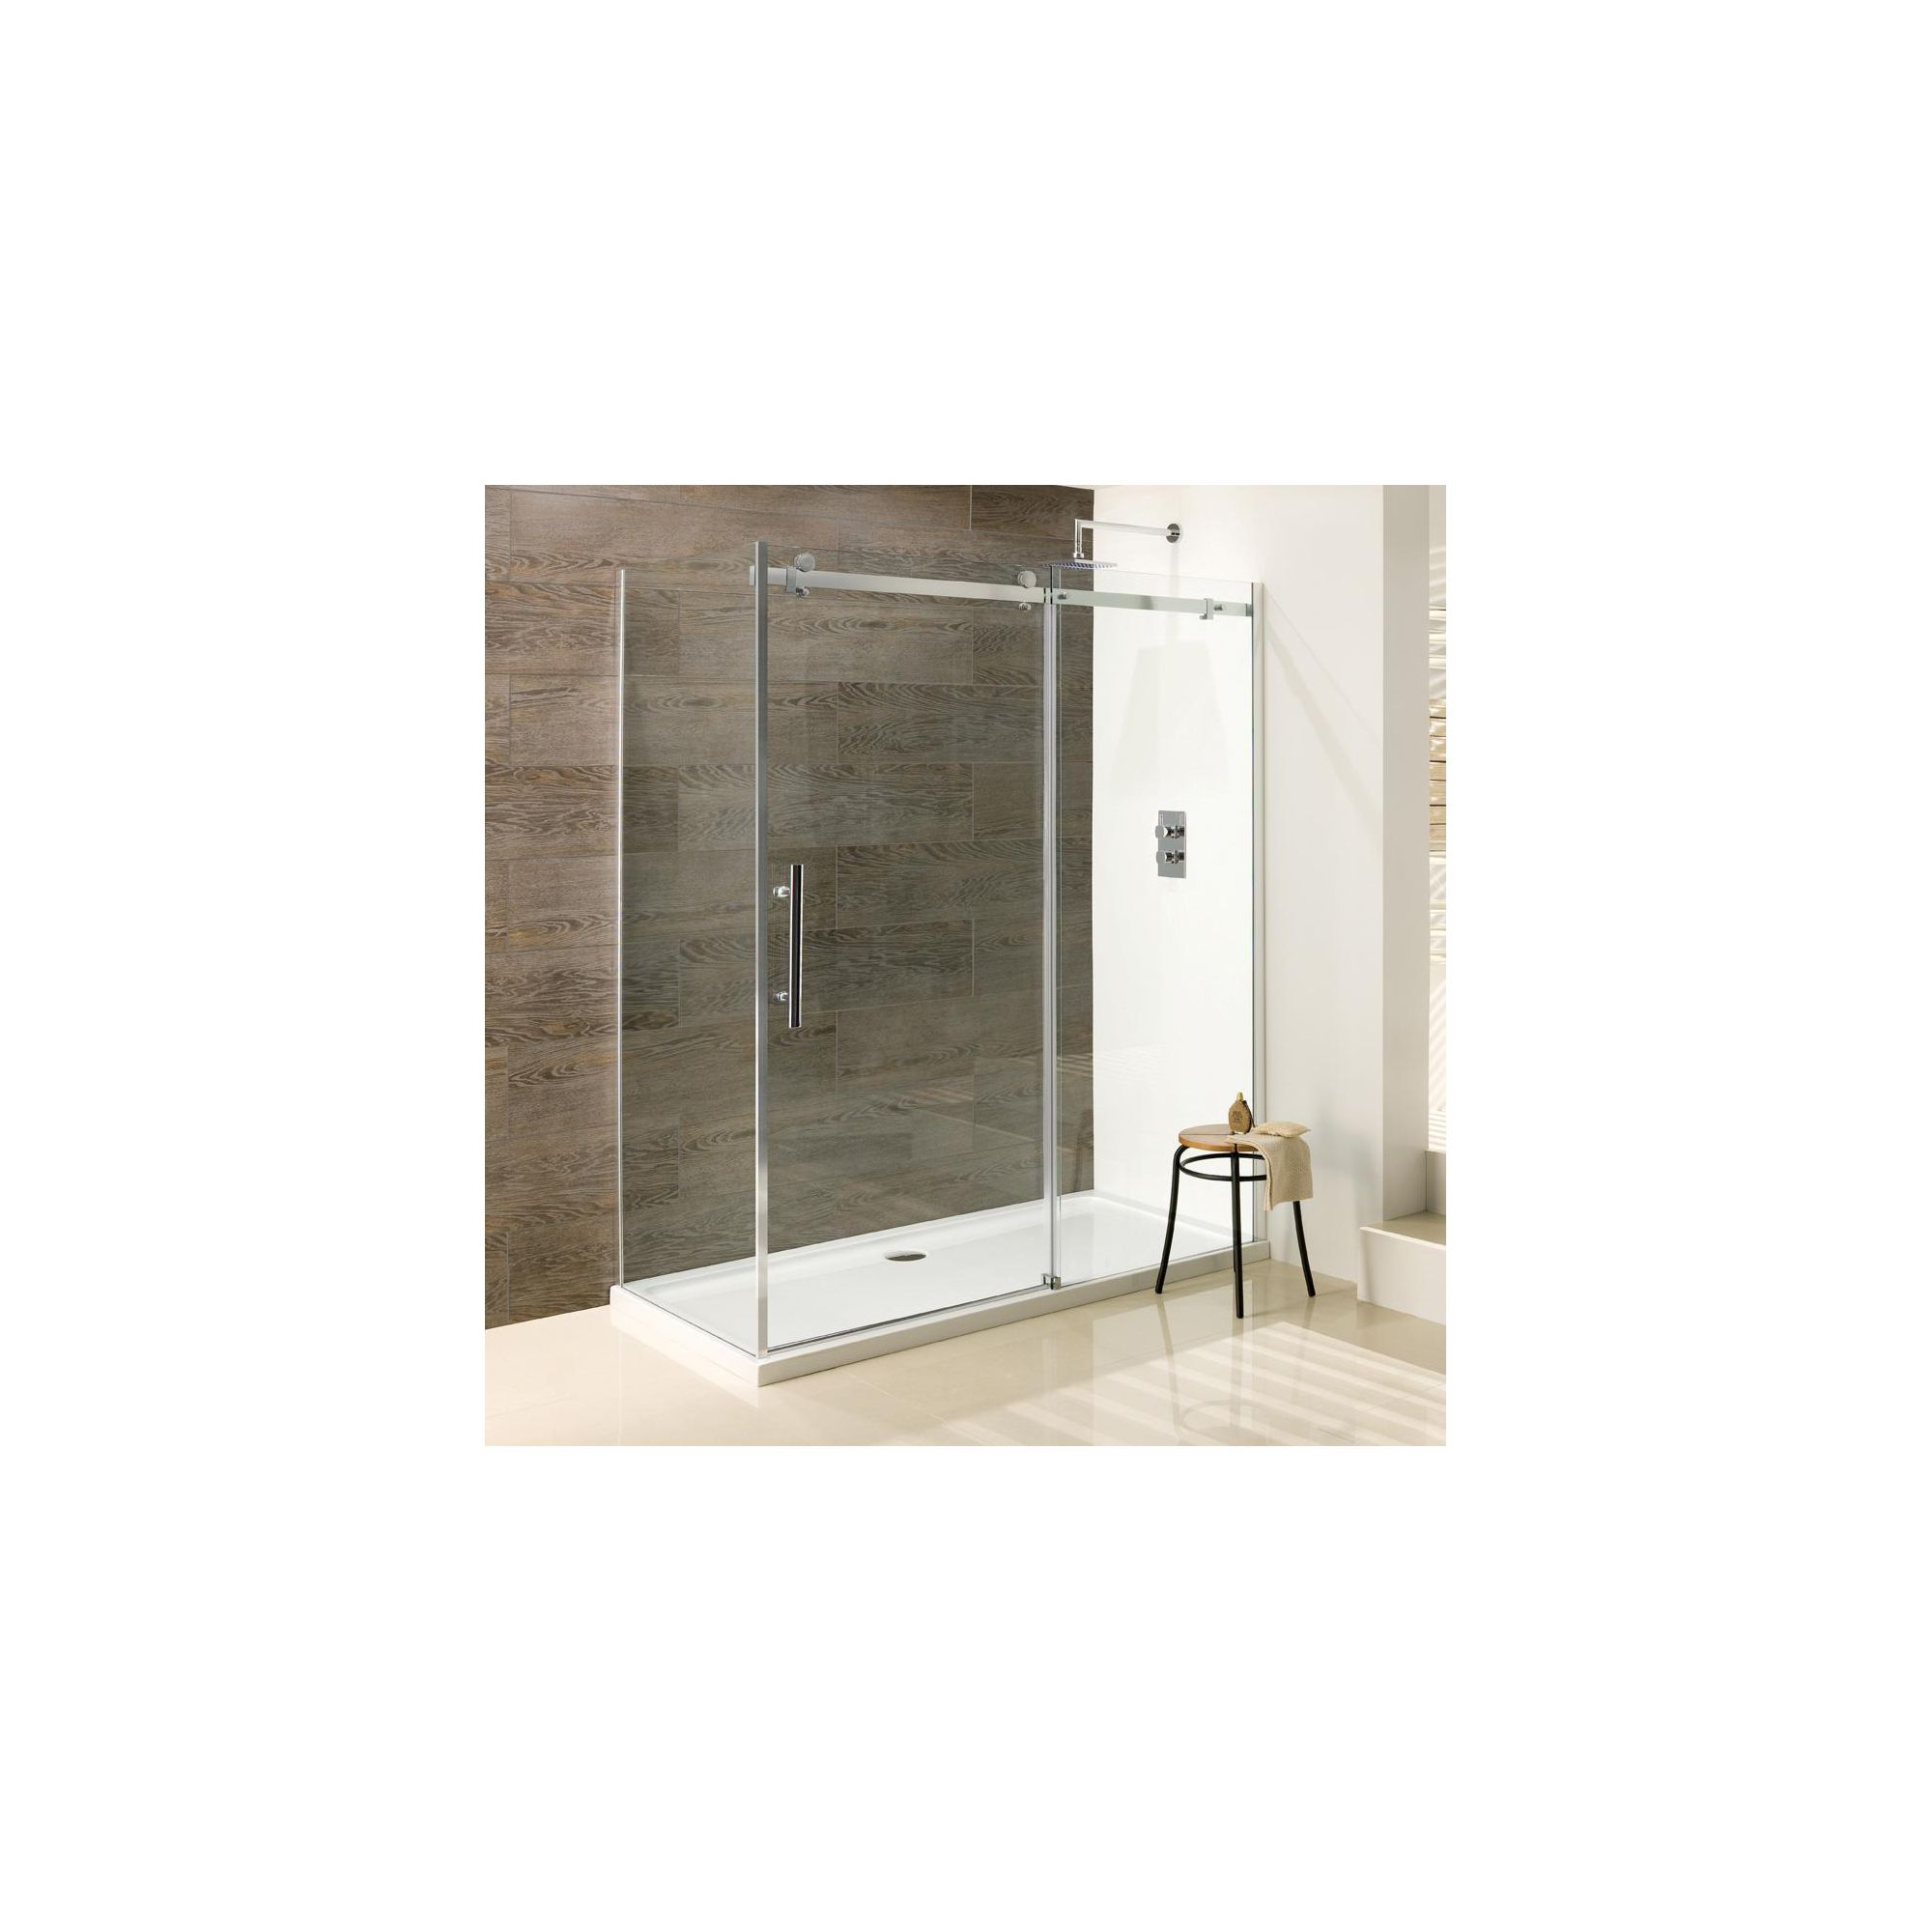 Duchy Deluxe Silver Sliding Door Shower Enclosure with Side Panel 1100mm x 800mm (Complete with Tray), 10mm Glass at Tesco Direct